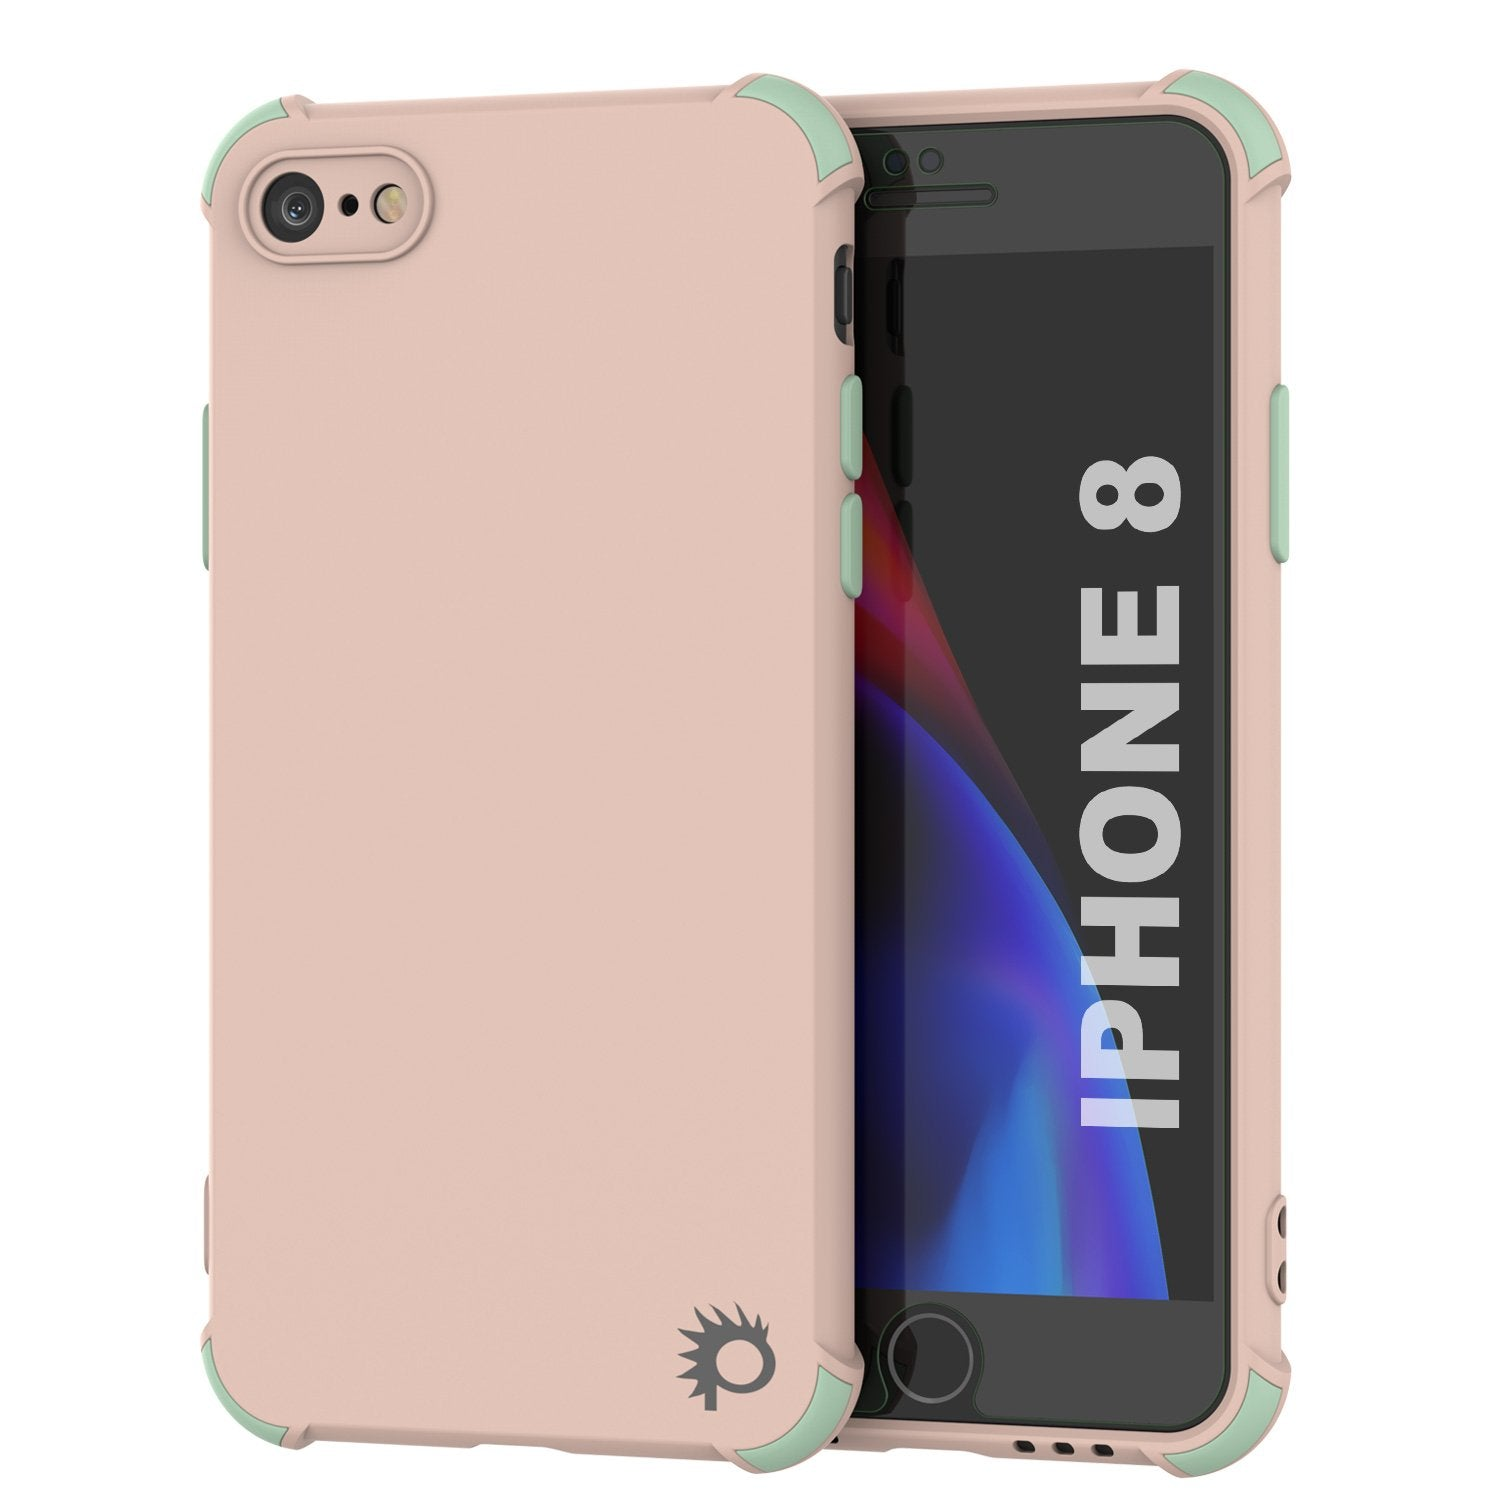 Punkcase Protective & Lightweight TPU Case [Sunshine Series] for iPhone 8 [Light Green]